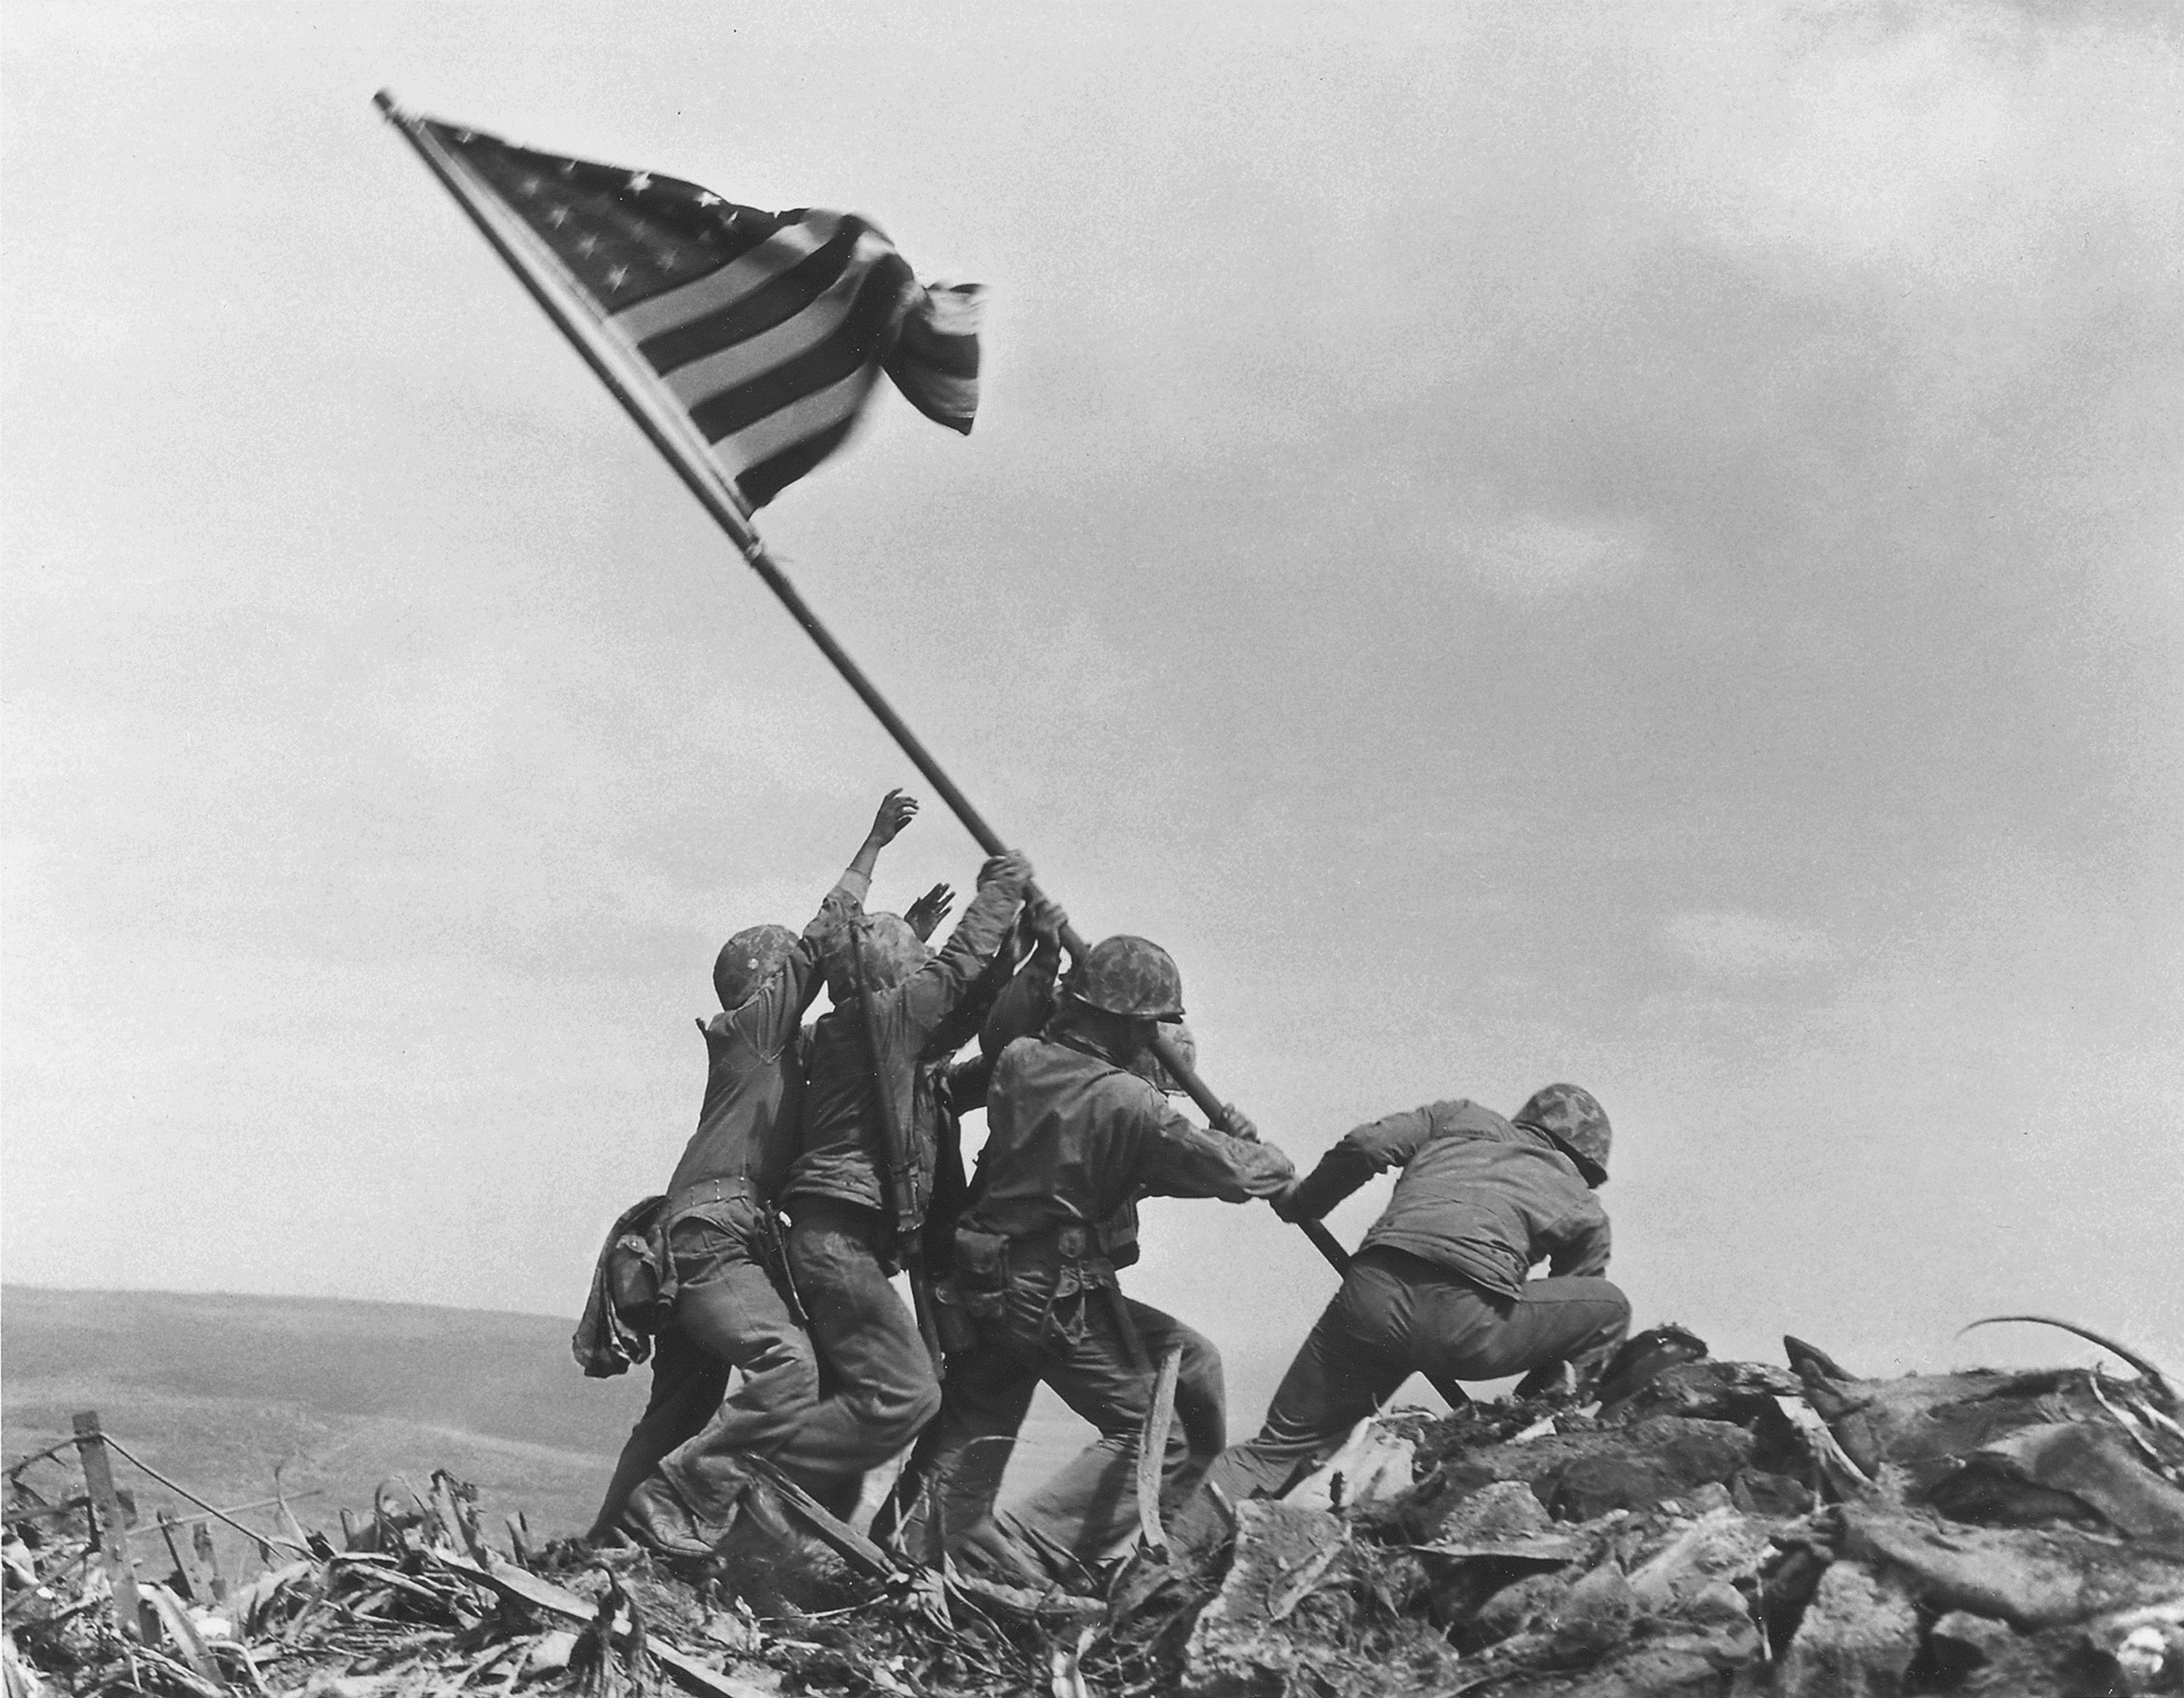 In this Feb 23, 1945 file photo, U.S. Marines of the 28th Regiment, 5th Division, raise the American flag atop Mt. Suribachi, Iwo Jima, Japan. Krelle's and Foley's research found that the man second from right is Franklin Sousley, not John Bradley. Sousley was originally thought to be the man second from the left, but that's Harold Schultz, Marines confirmed June 23.